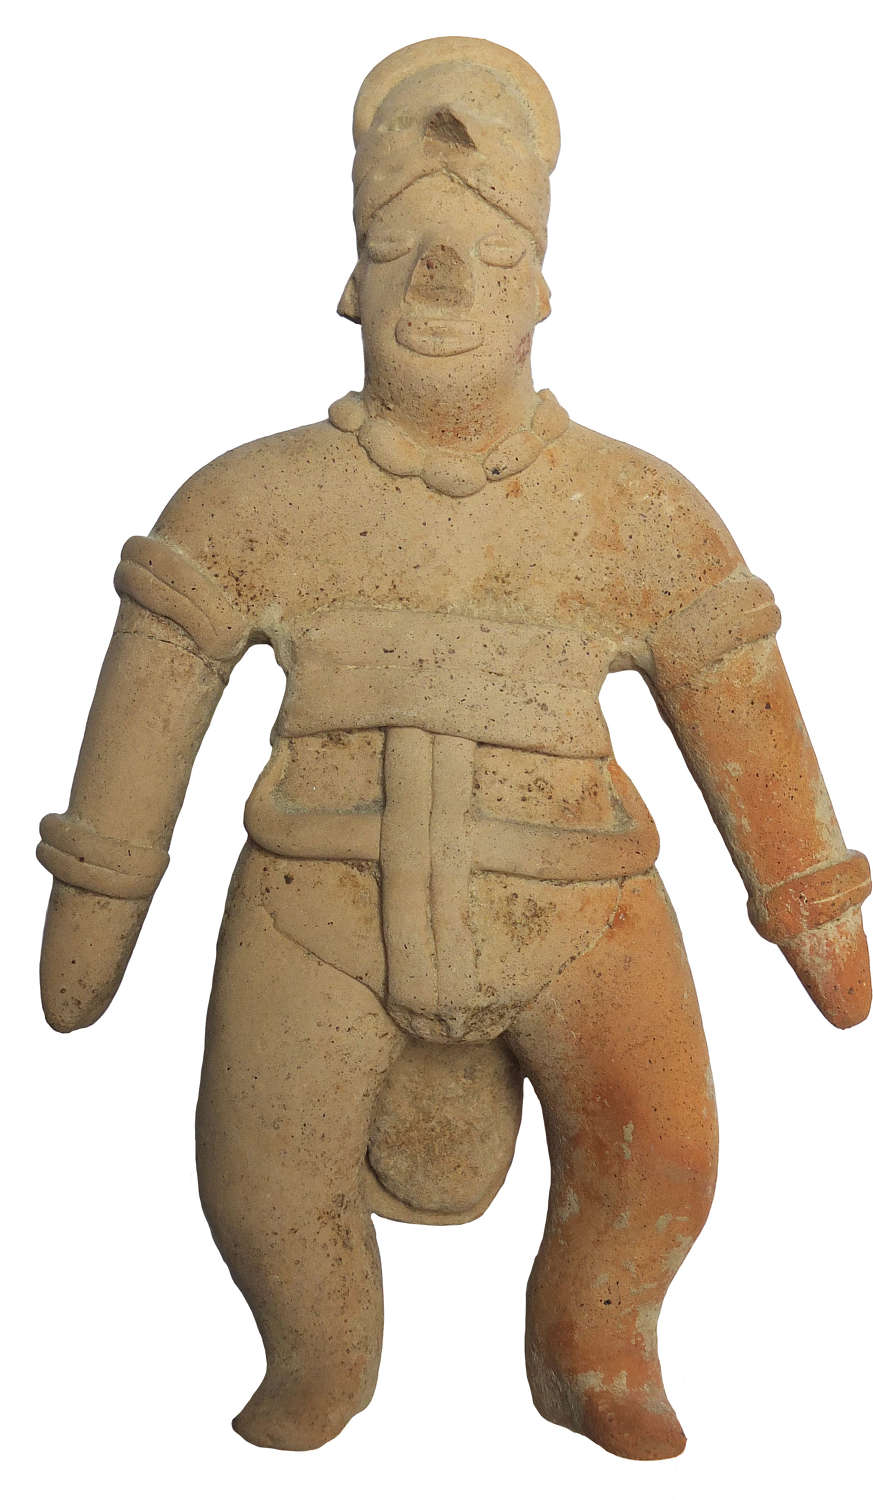 A Colima terracotta figure, west Mexico, c. 300 B.C.-300 A.D.